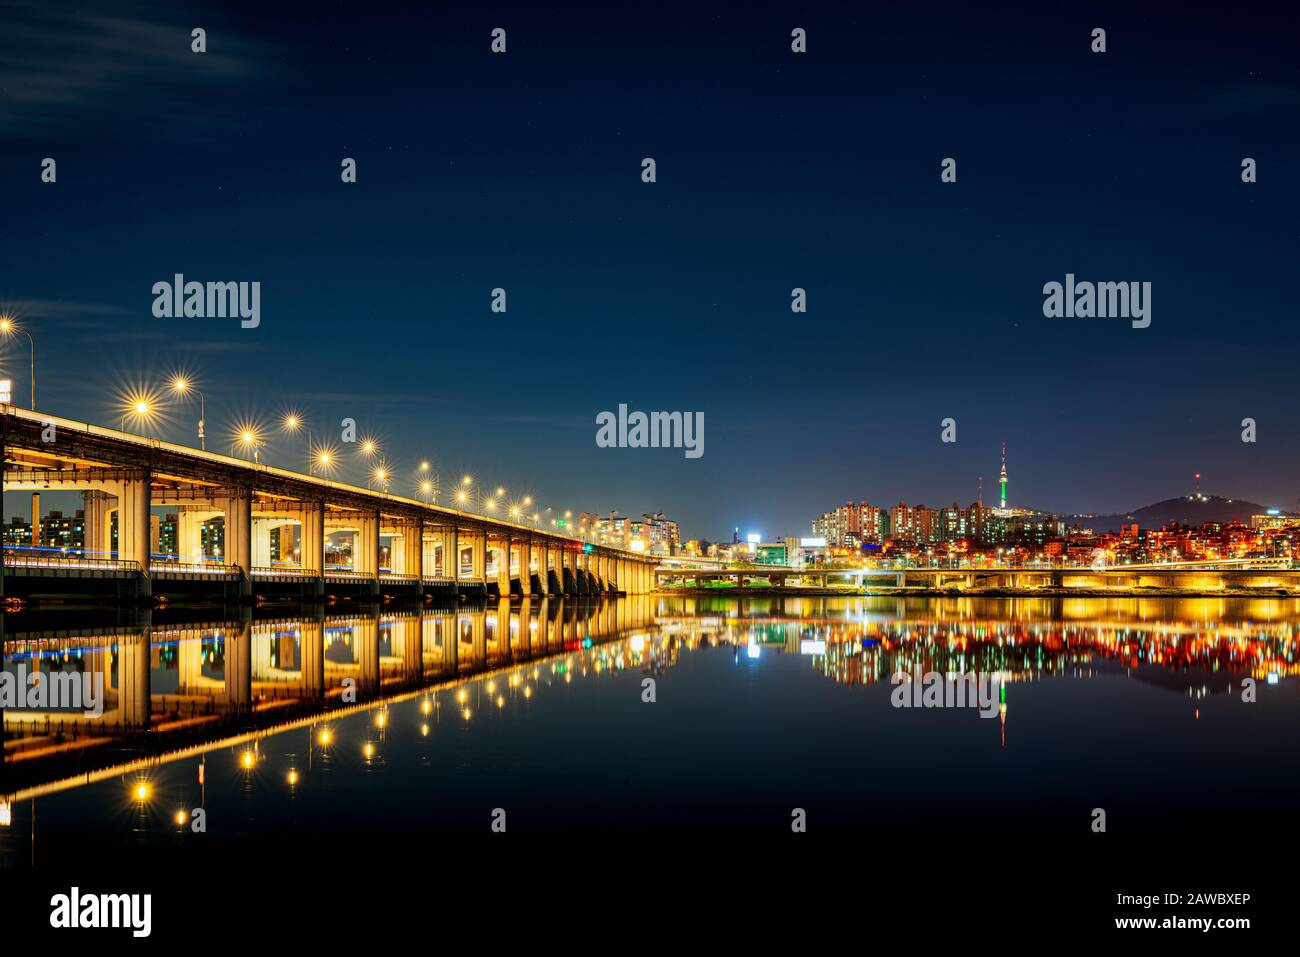 Bridges punctuate the skyline from the river's eye view along the Han River in Seoul, South Korea.  Namsan tower dominates the northern skyline. Stock Photo